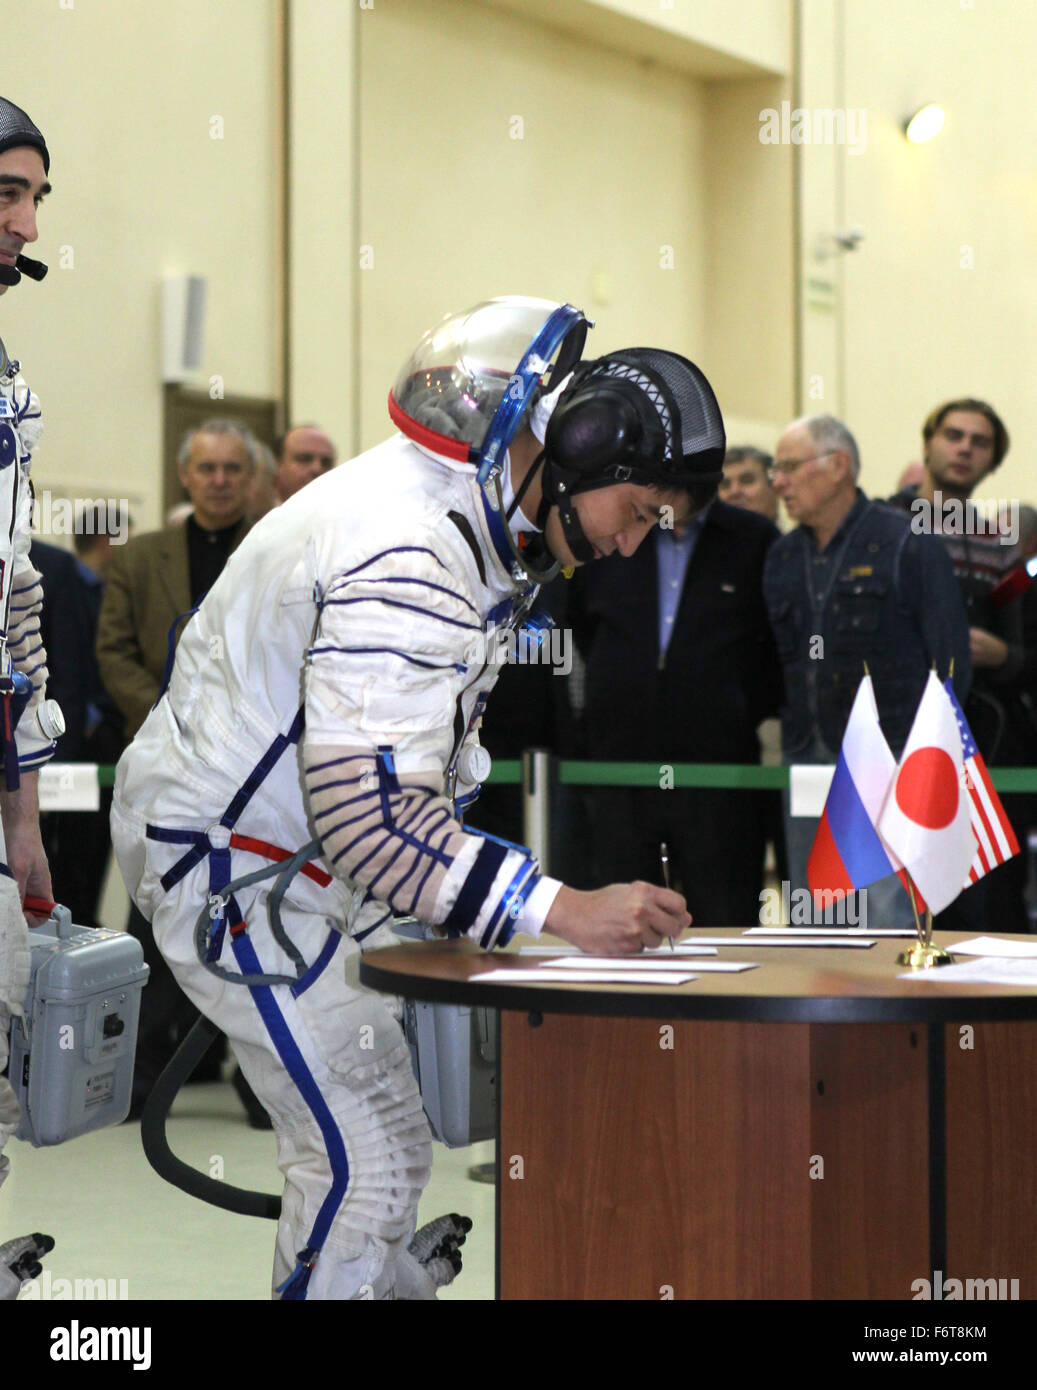 Star City, Russia. 19th November, 2015. International Space Station Expedition 46 backup crew member Japan Aerospace - Stock Image